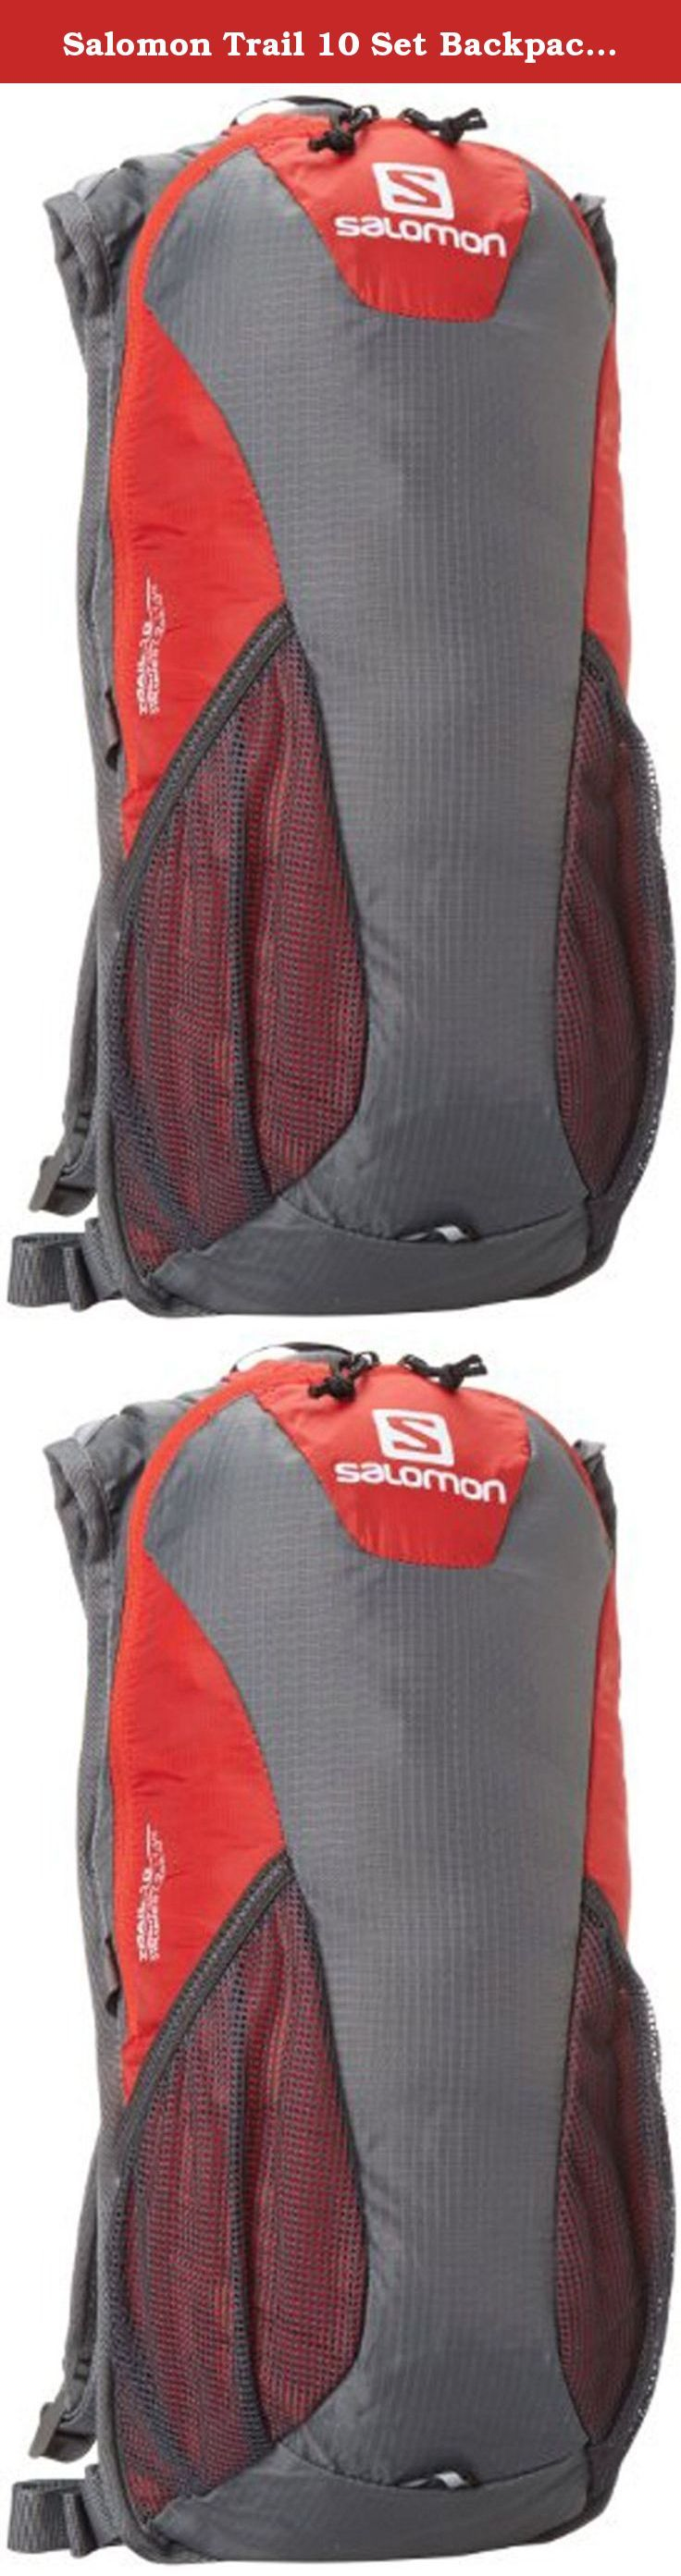 Salomon Trail 10 Set Backpack, Red/Grey, One Size. Lightweight 10L pack designed to carry essentials for an active short hike, quick run, or a stroll around town.